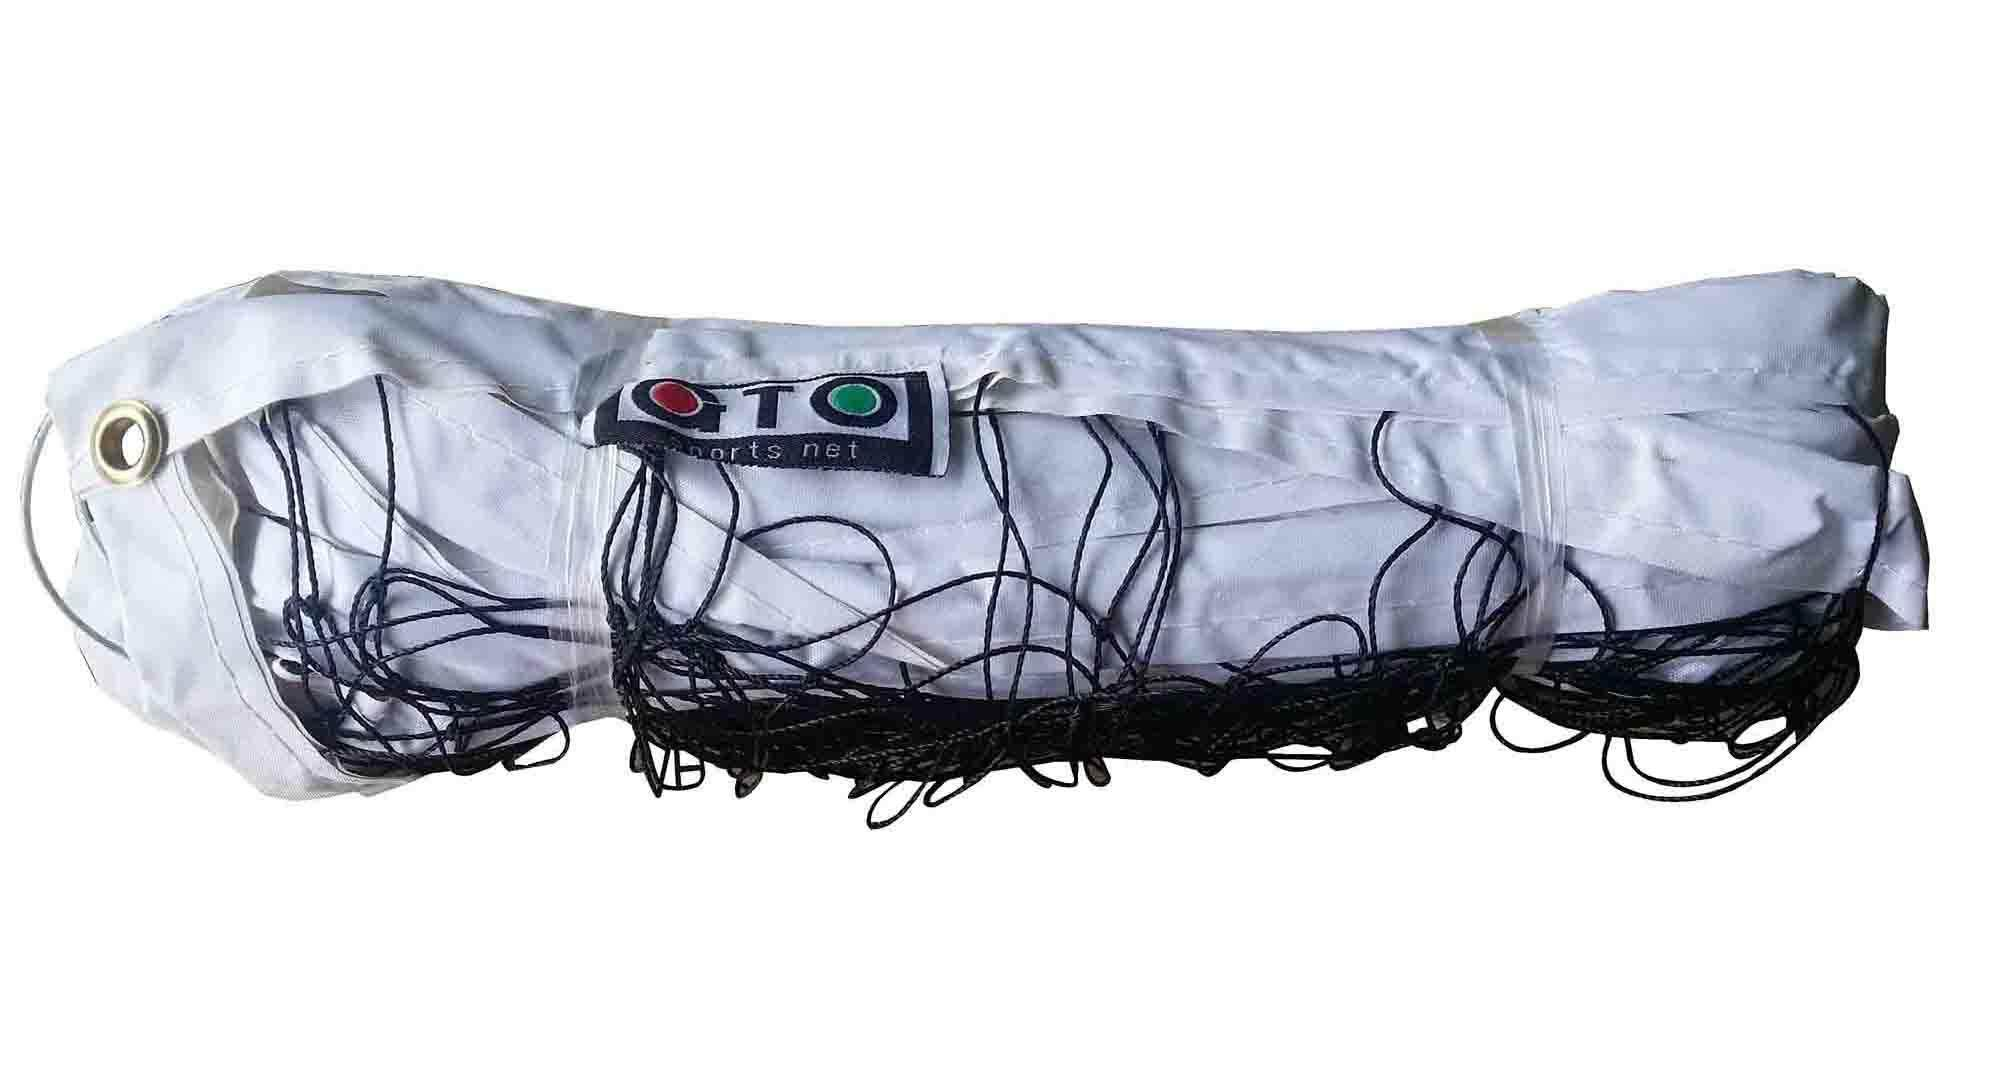 Volleyball Net With Cable For Training